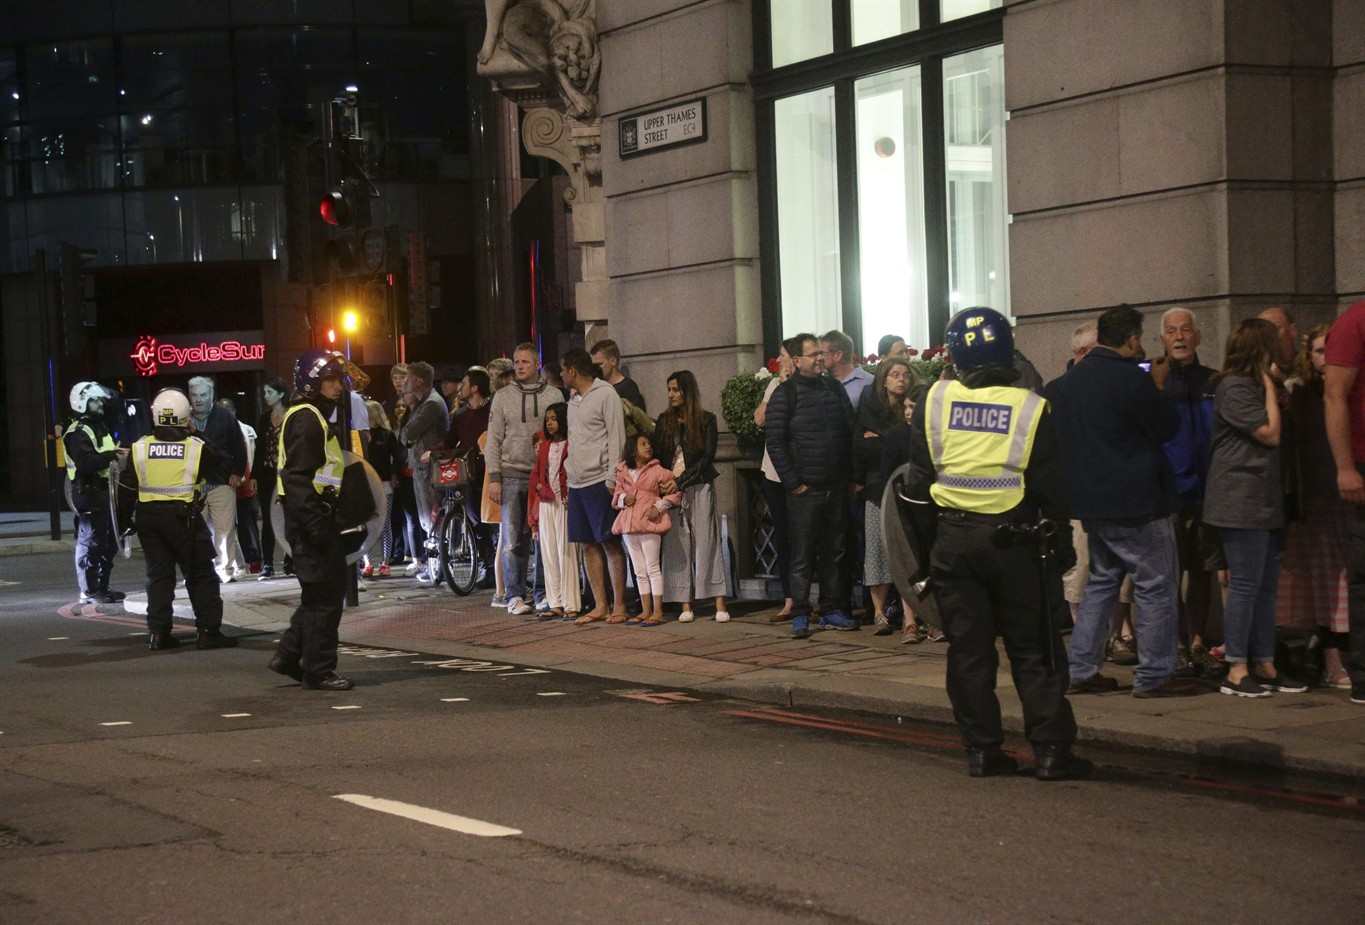 At Least 7 Dead, 48 Injured in London Terror Attack